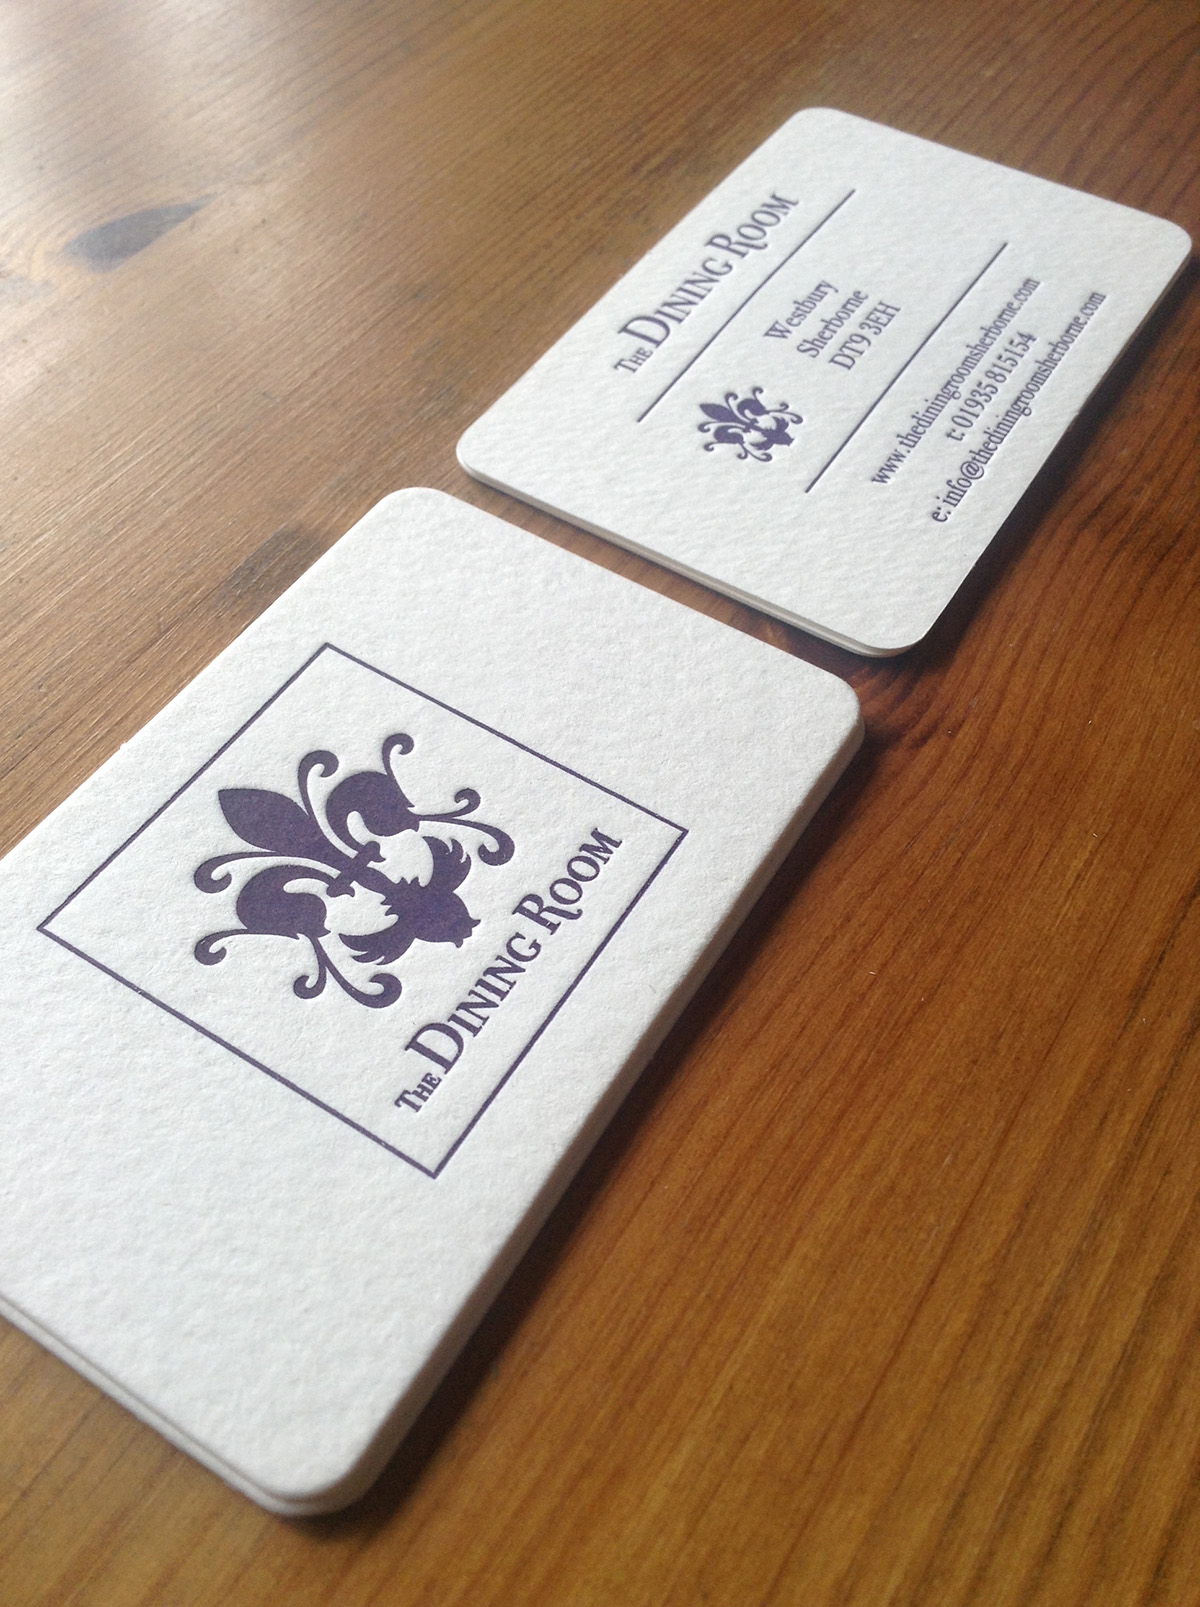 The Dining Room Sherborne Alt View Business Card Design by Digiwool